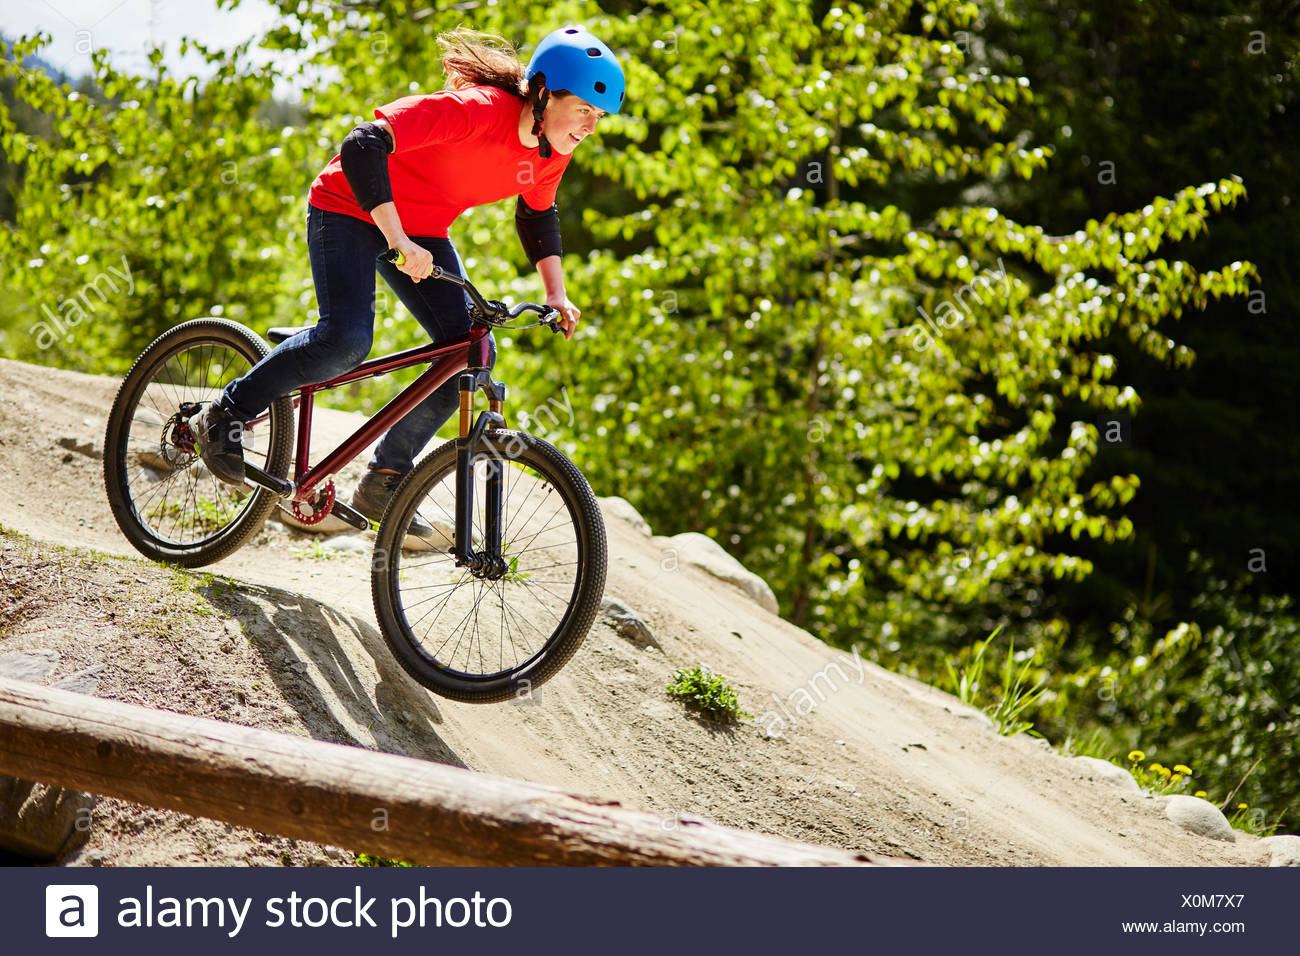 Young female bmx biker speeding down rocks in forest - Stock Image